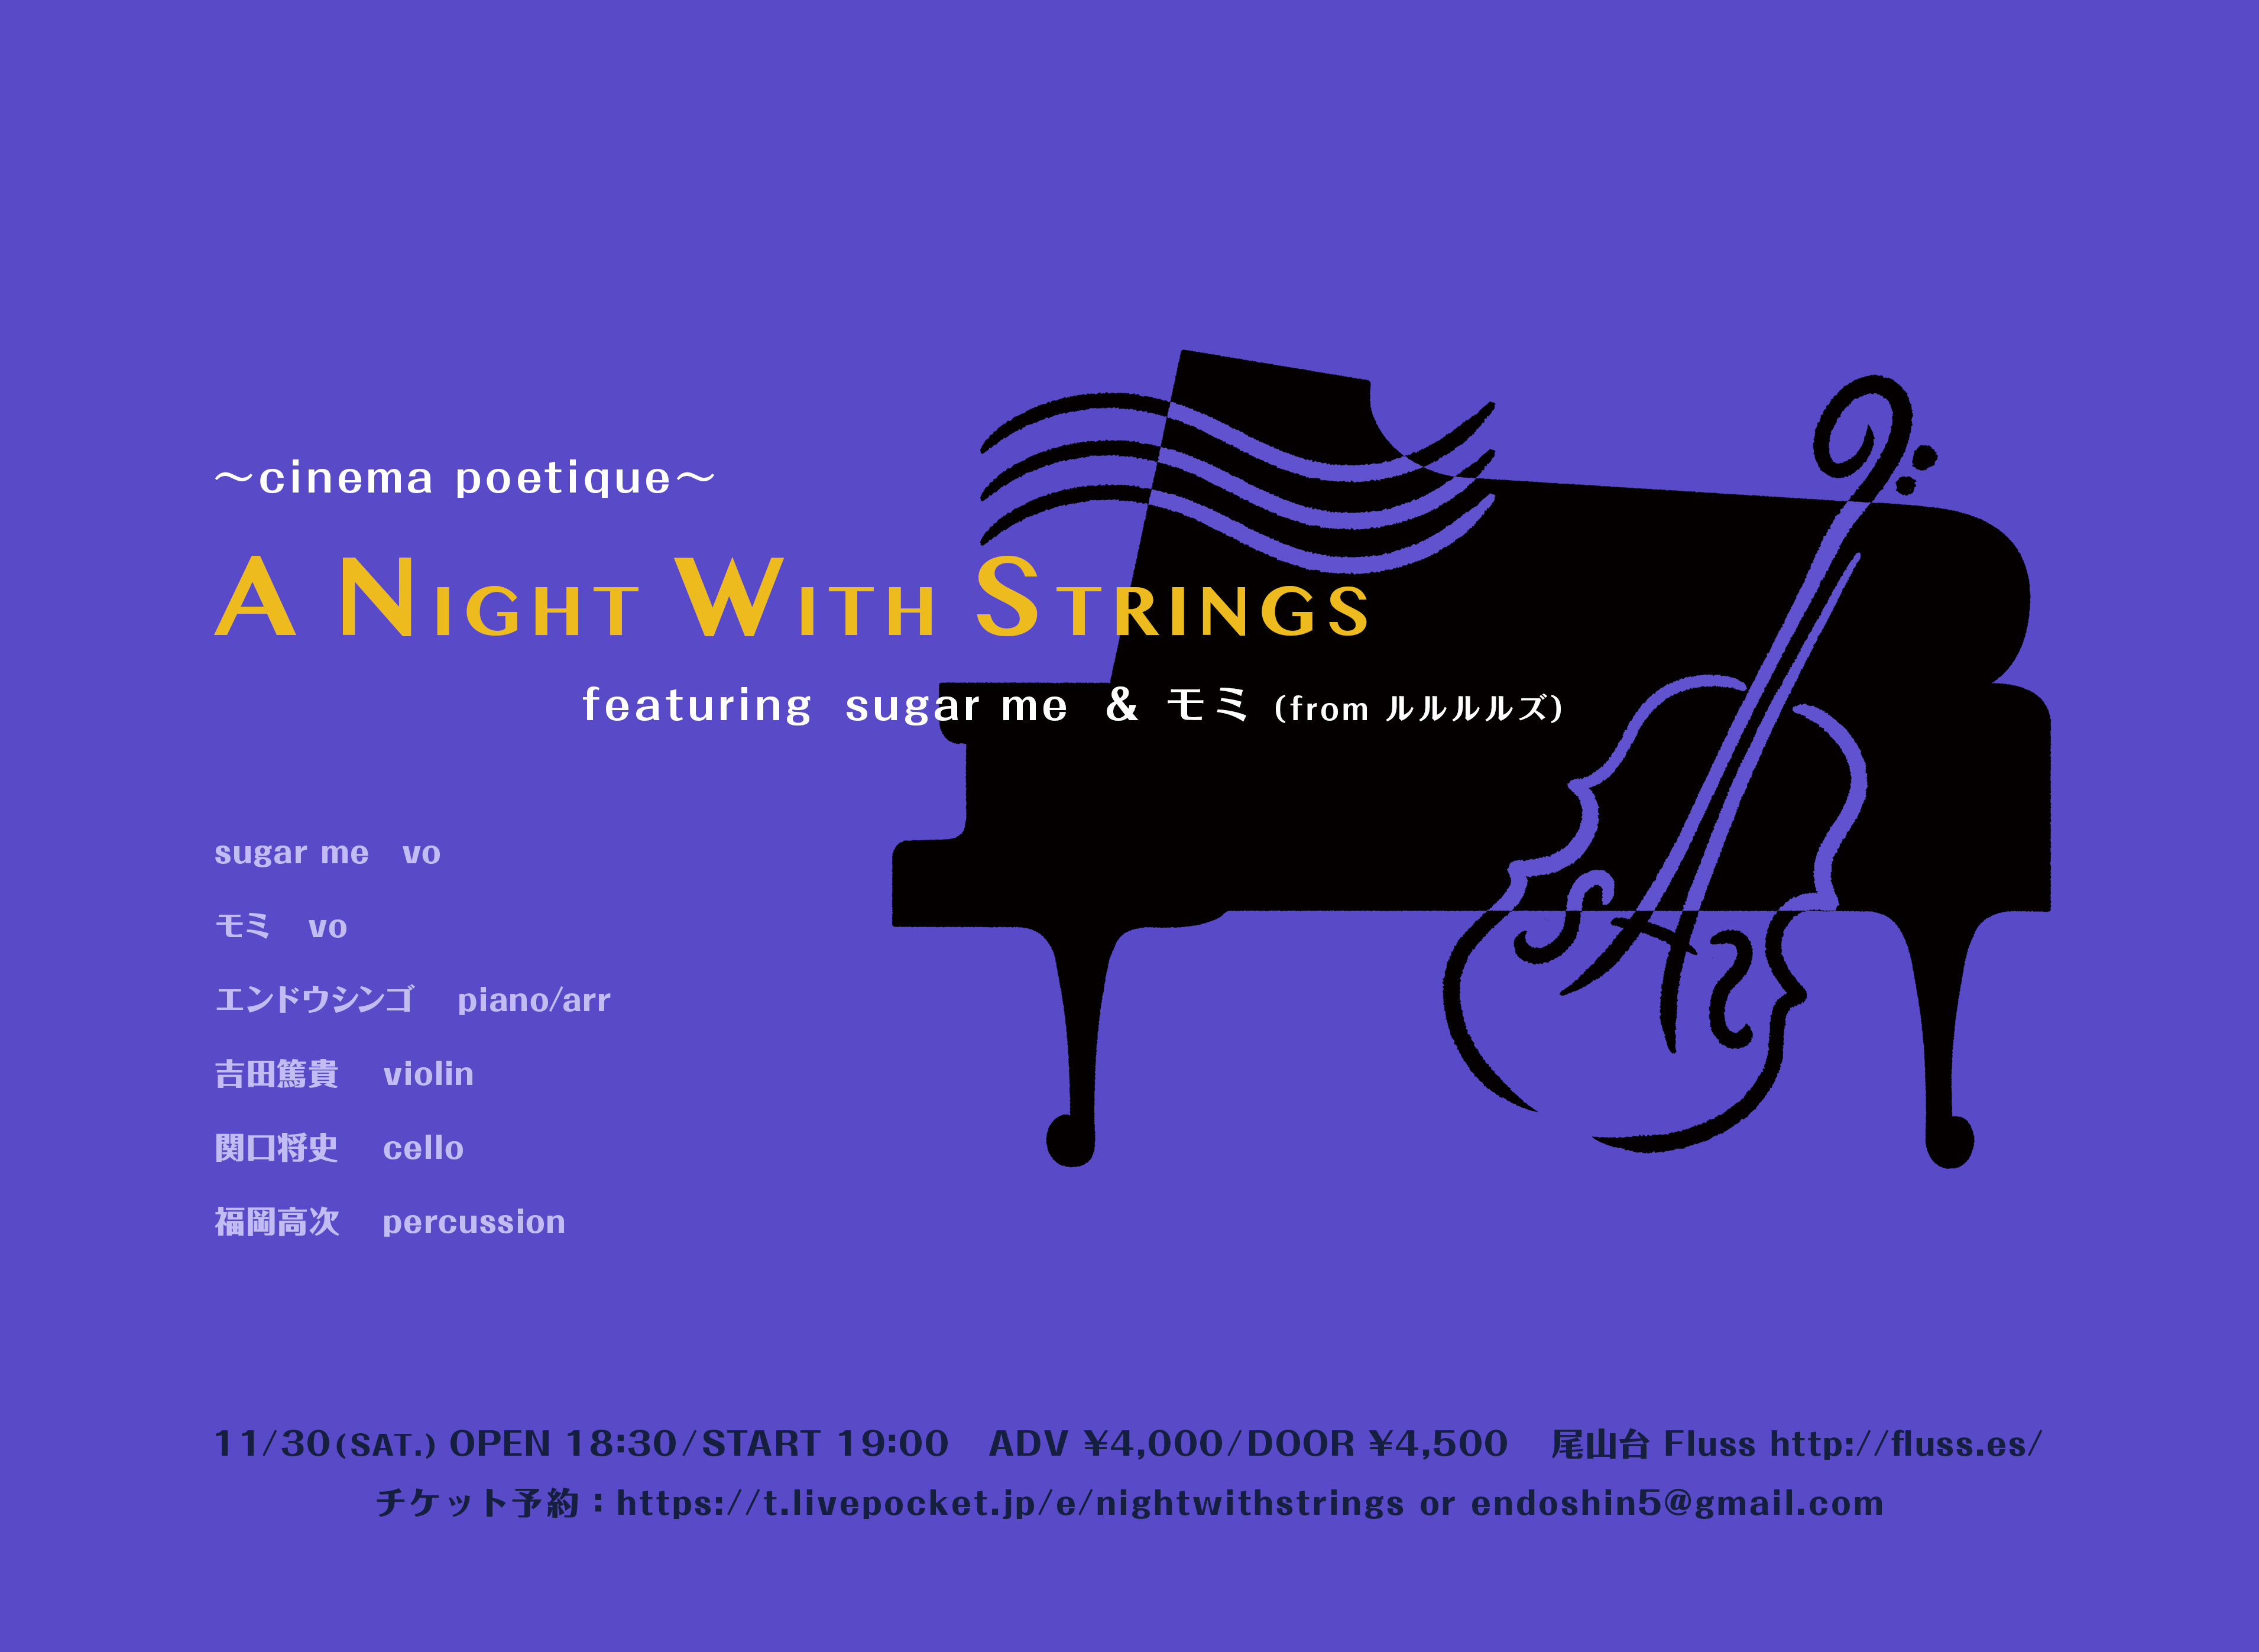 A night with strings  ~cinema poetique~   featuring sugar me &モミ(from ルルルルズ)